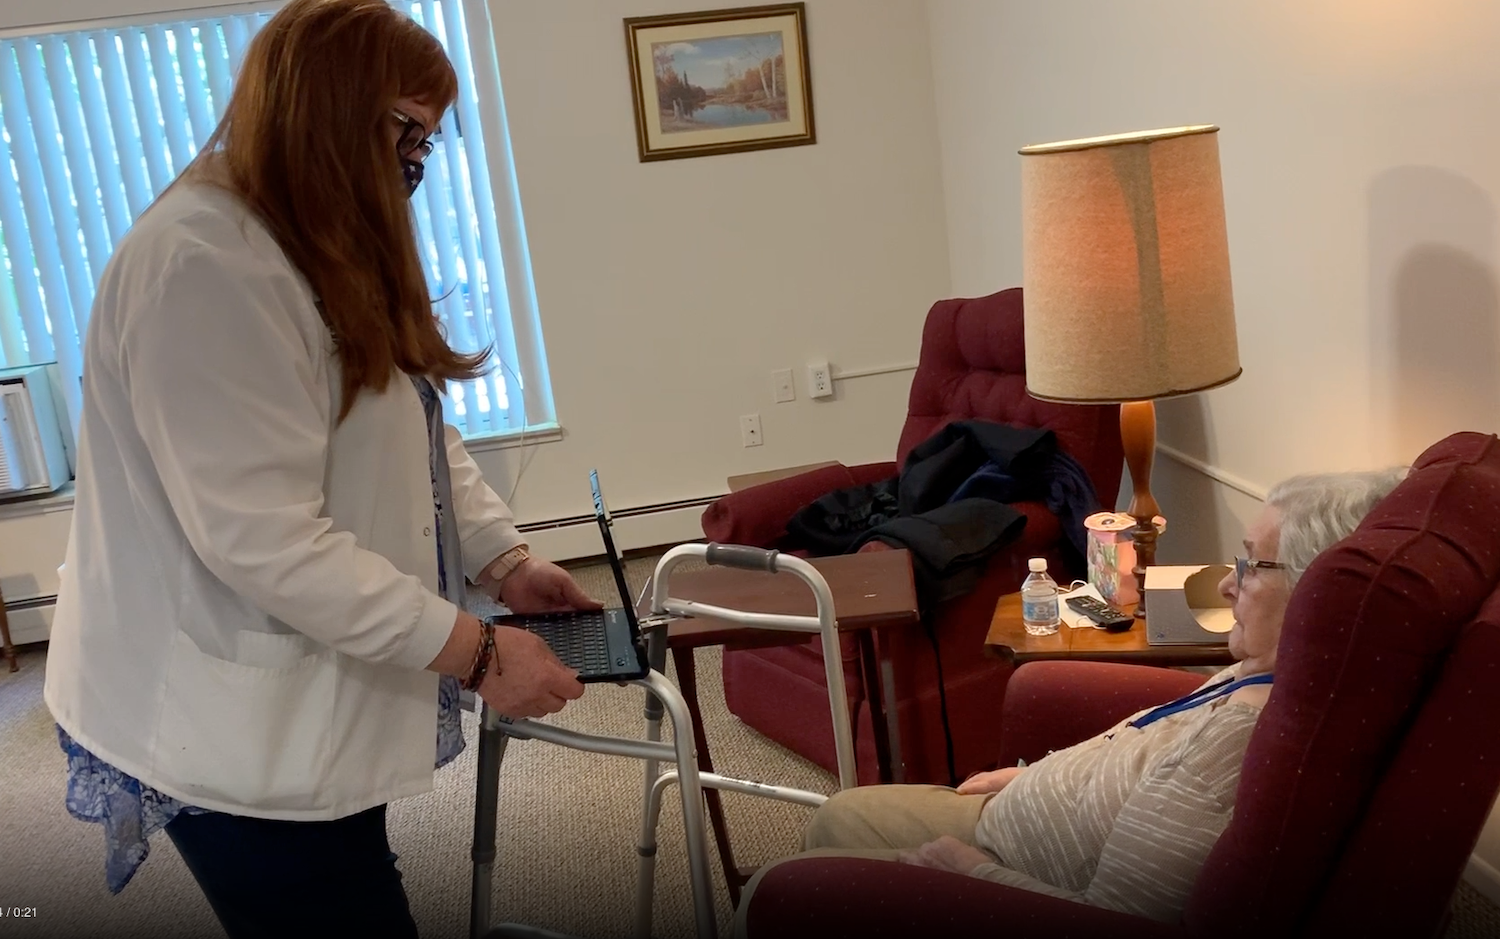 Nurse with iPad helping a Senior woman video chat with family